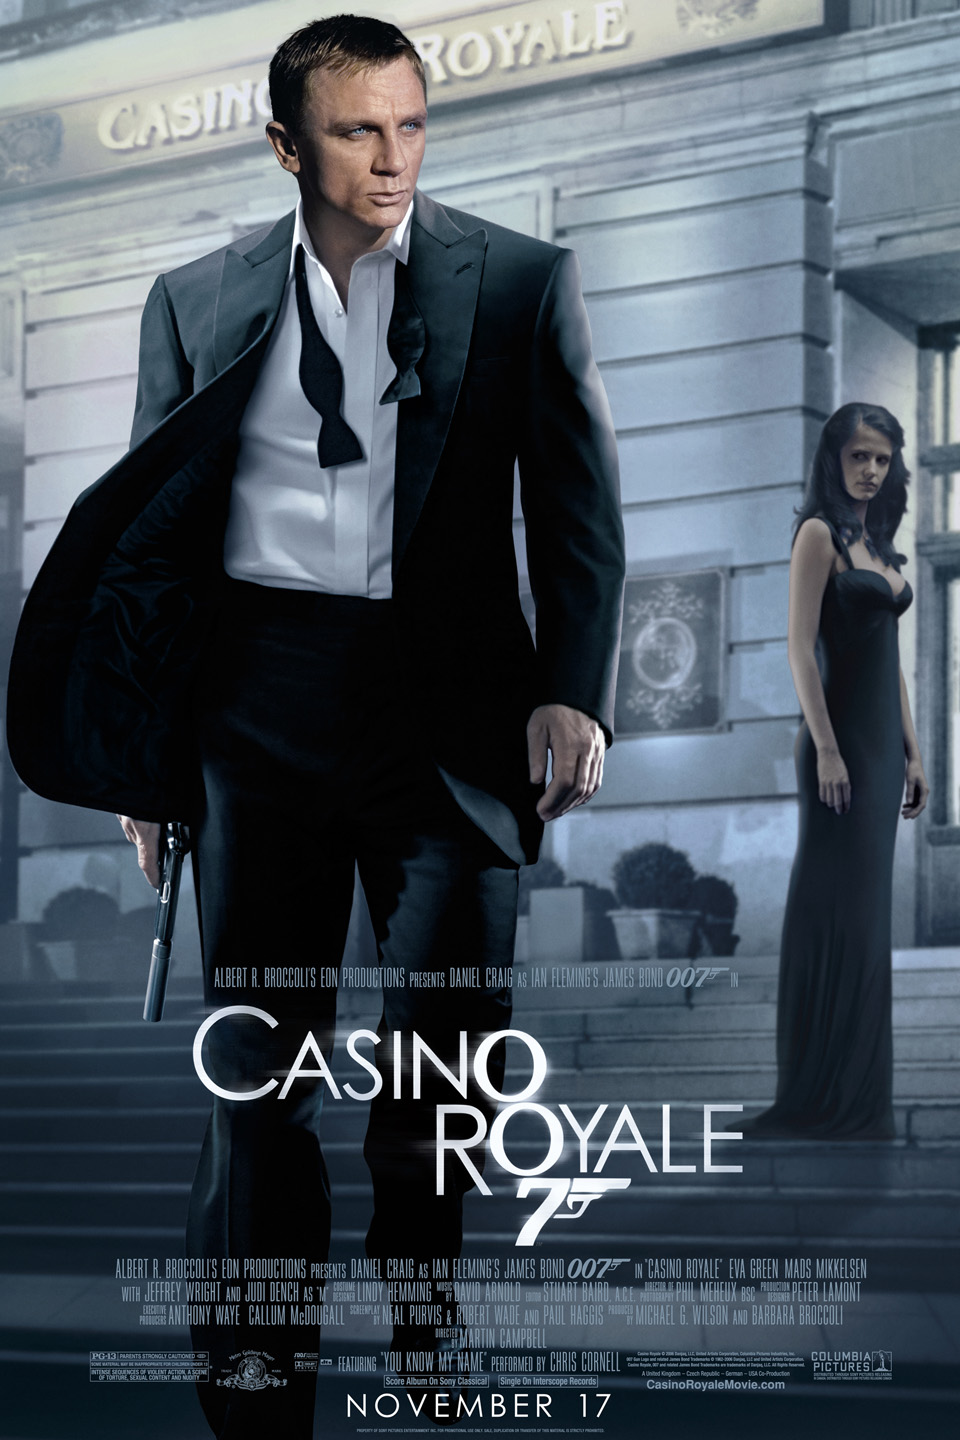 james bond casino royale full movie online www onlinecasino de